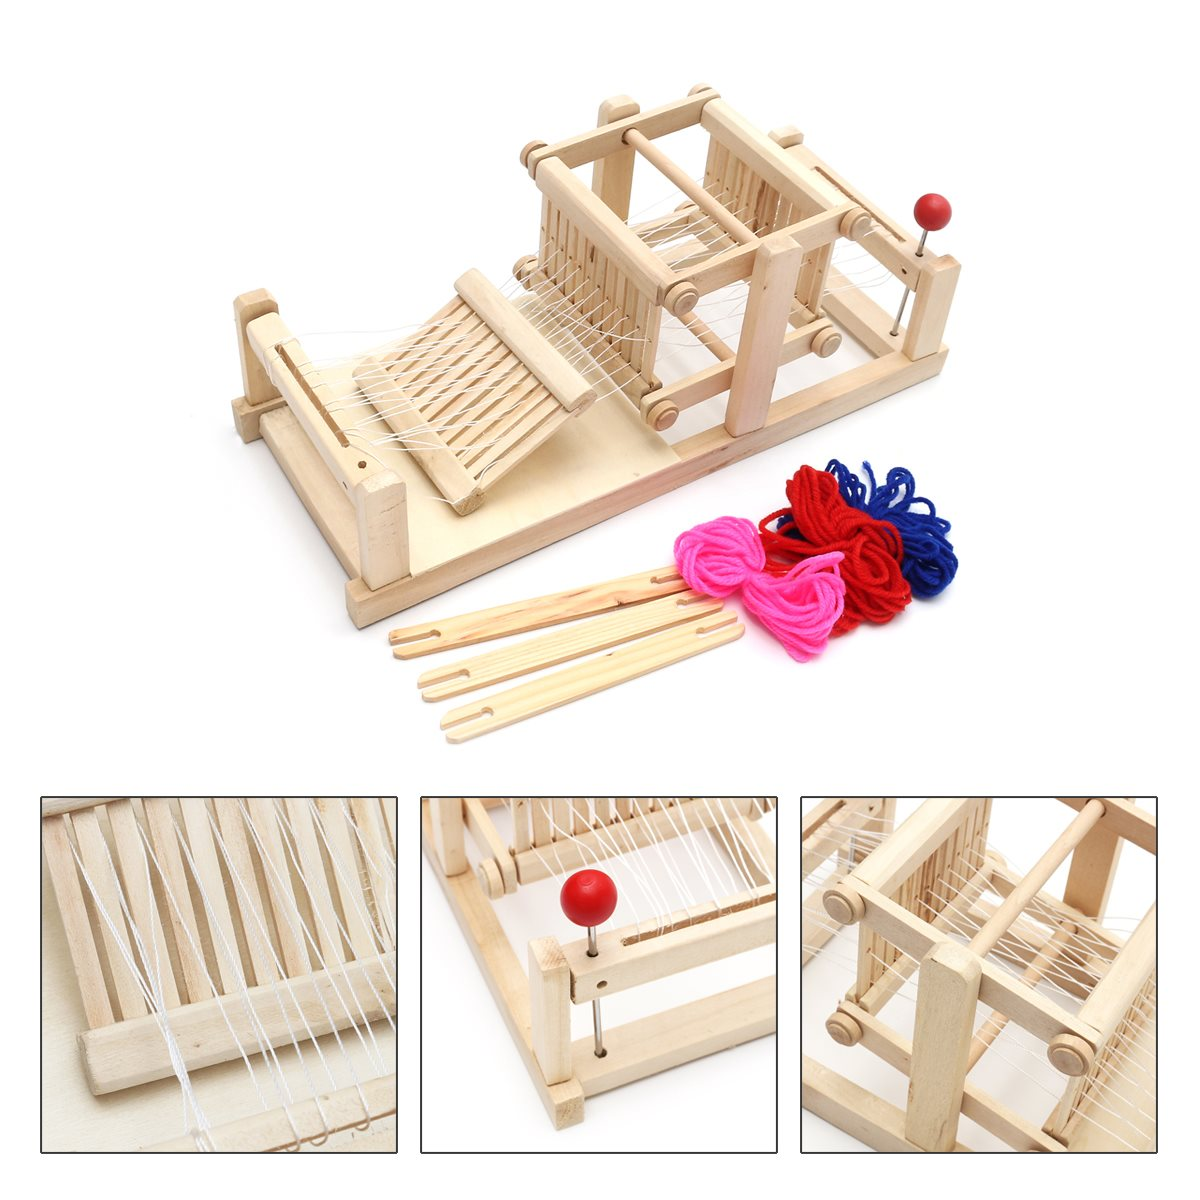 Child craft wooden blocks - New Large Chinese Traditional Wooden Table Weaving Loom Machine Model Hand Craft Toy Gift For Children